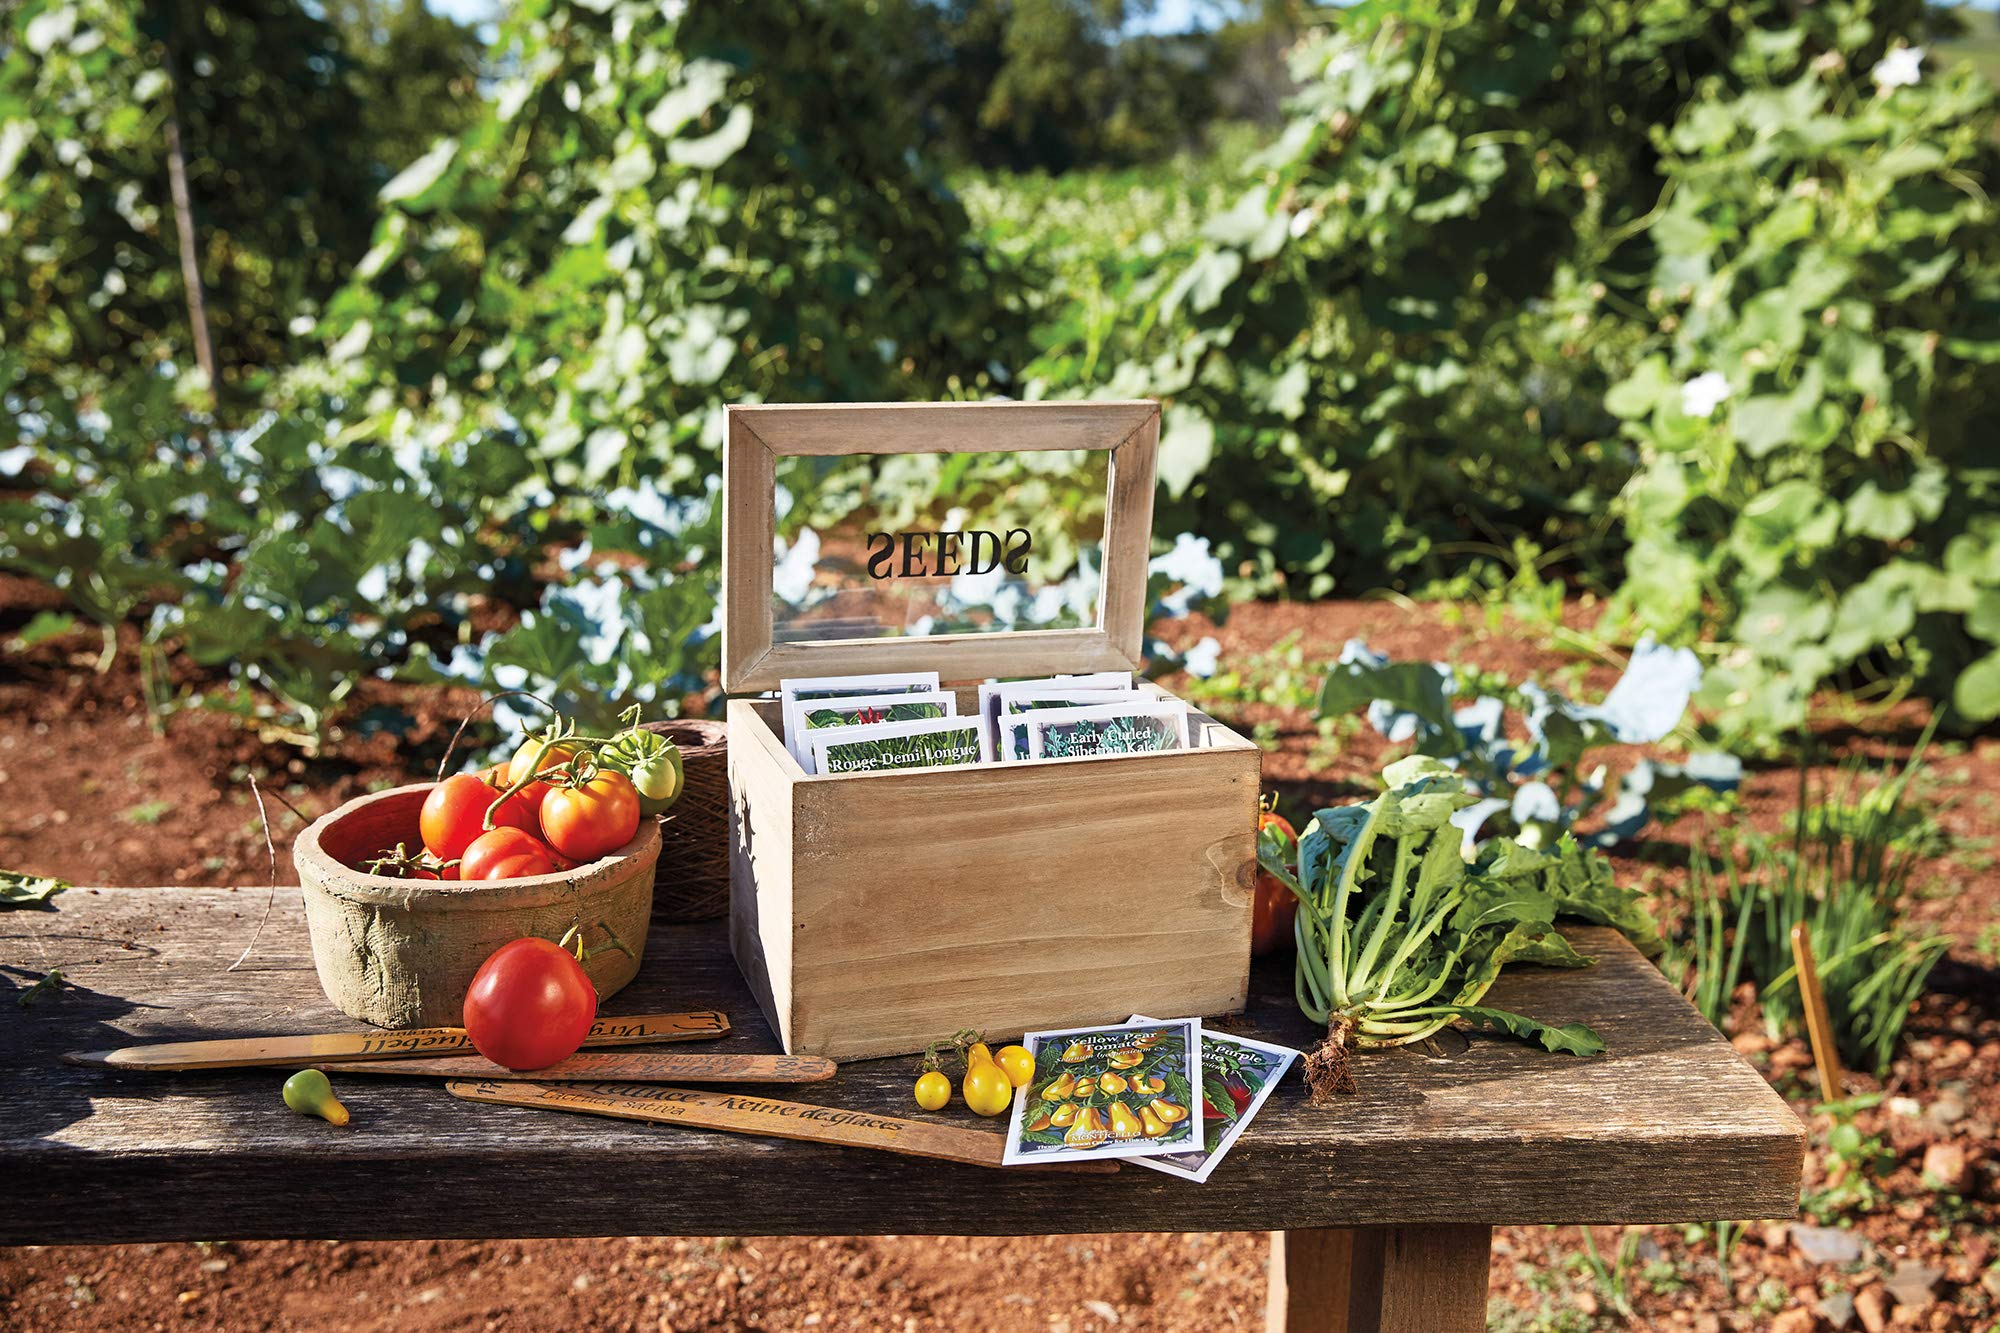 Monticello Seed Packet Box with 10 Heirloom Vegetable Seed Packets by Monticello